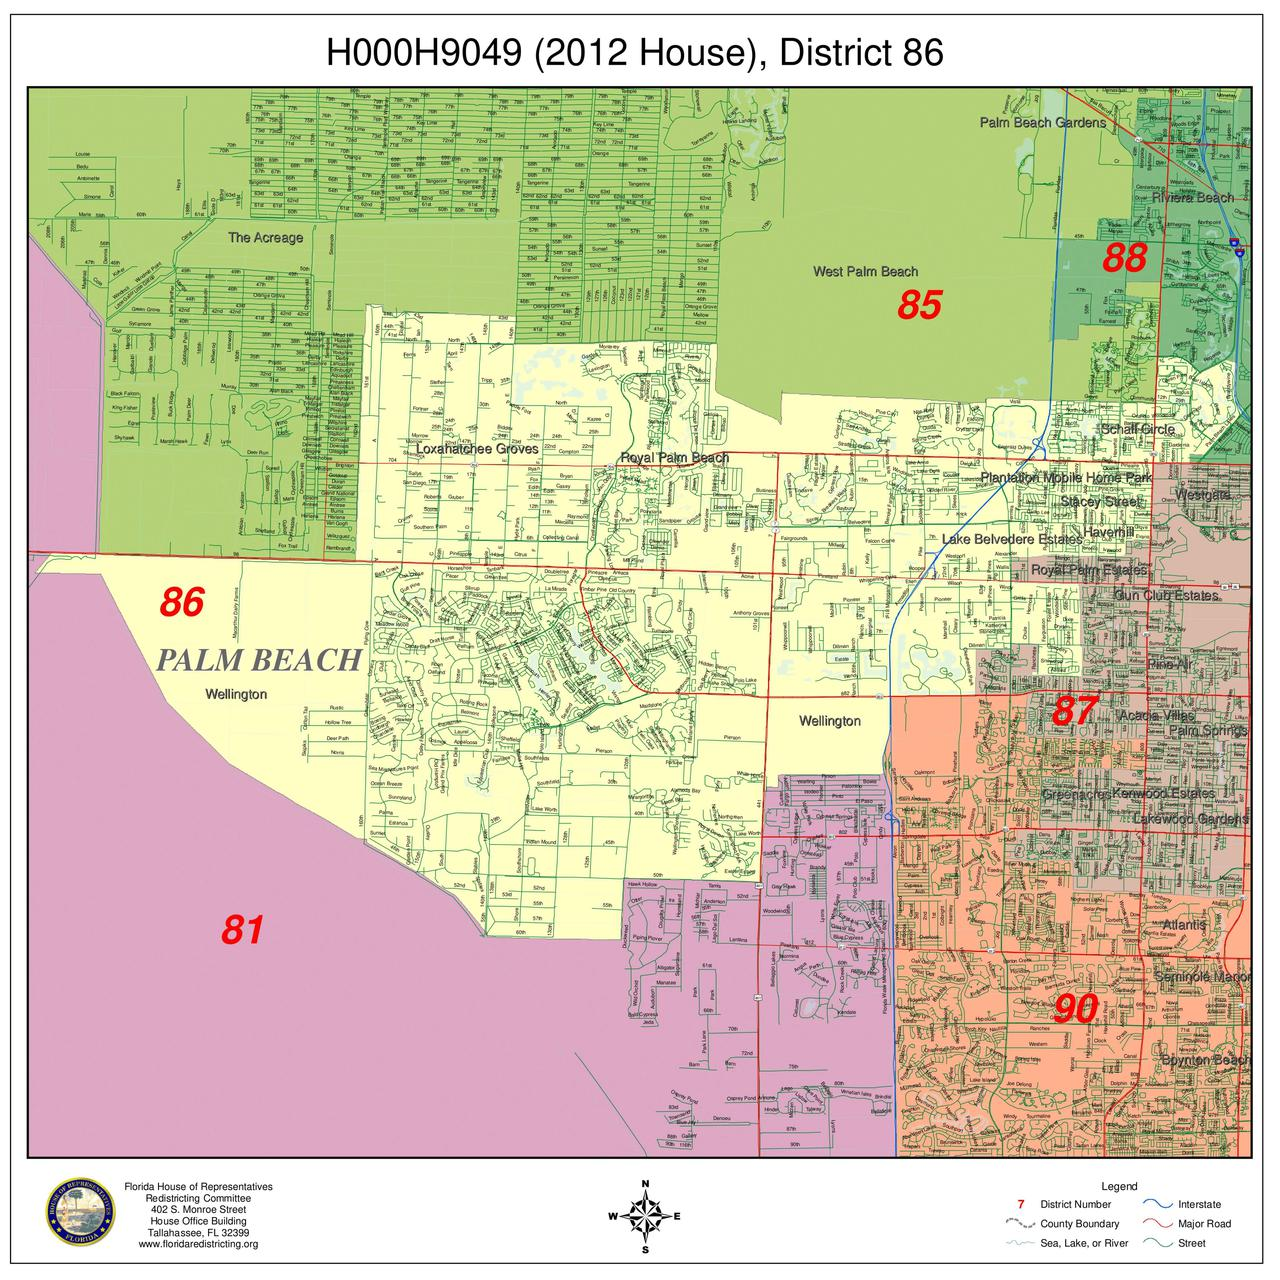 h000h9049_district_86wmap-1 (1).jpg